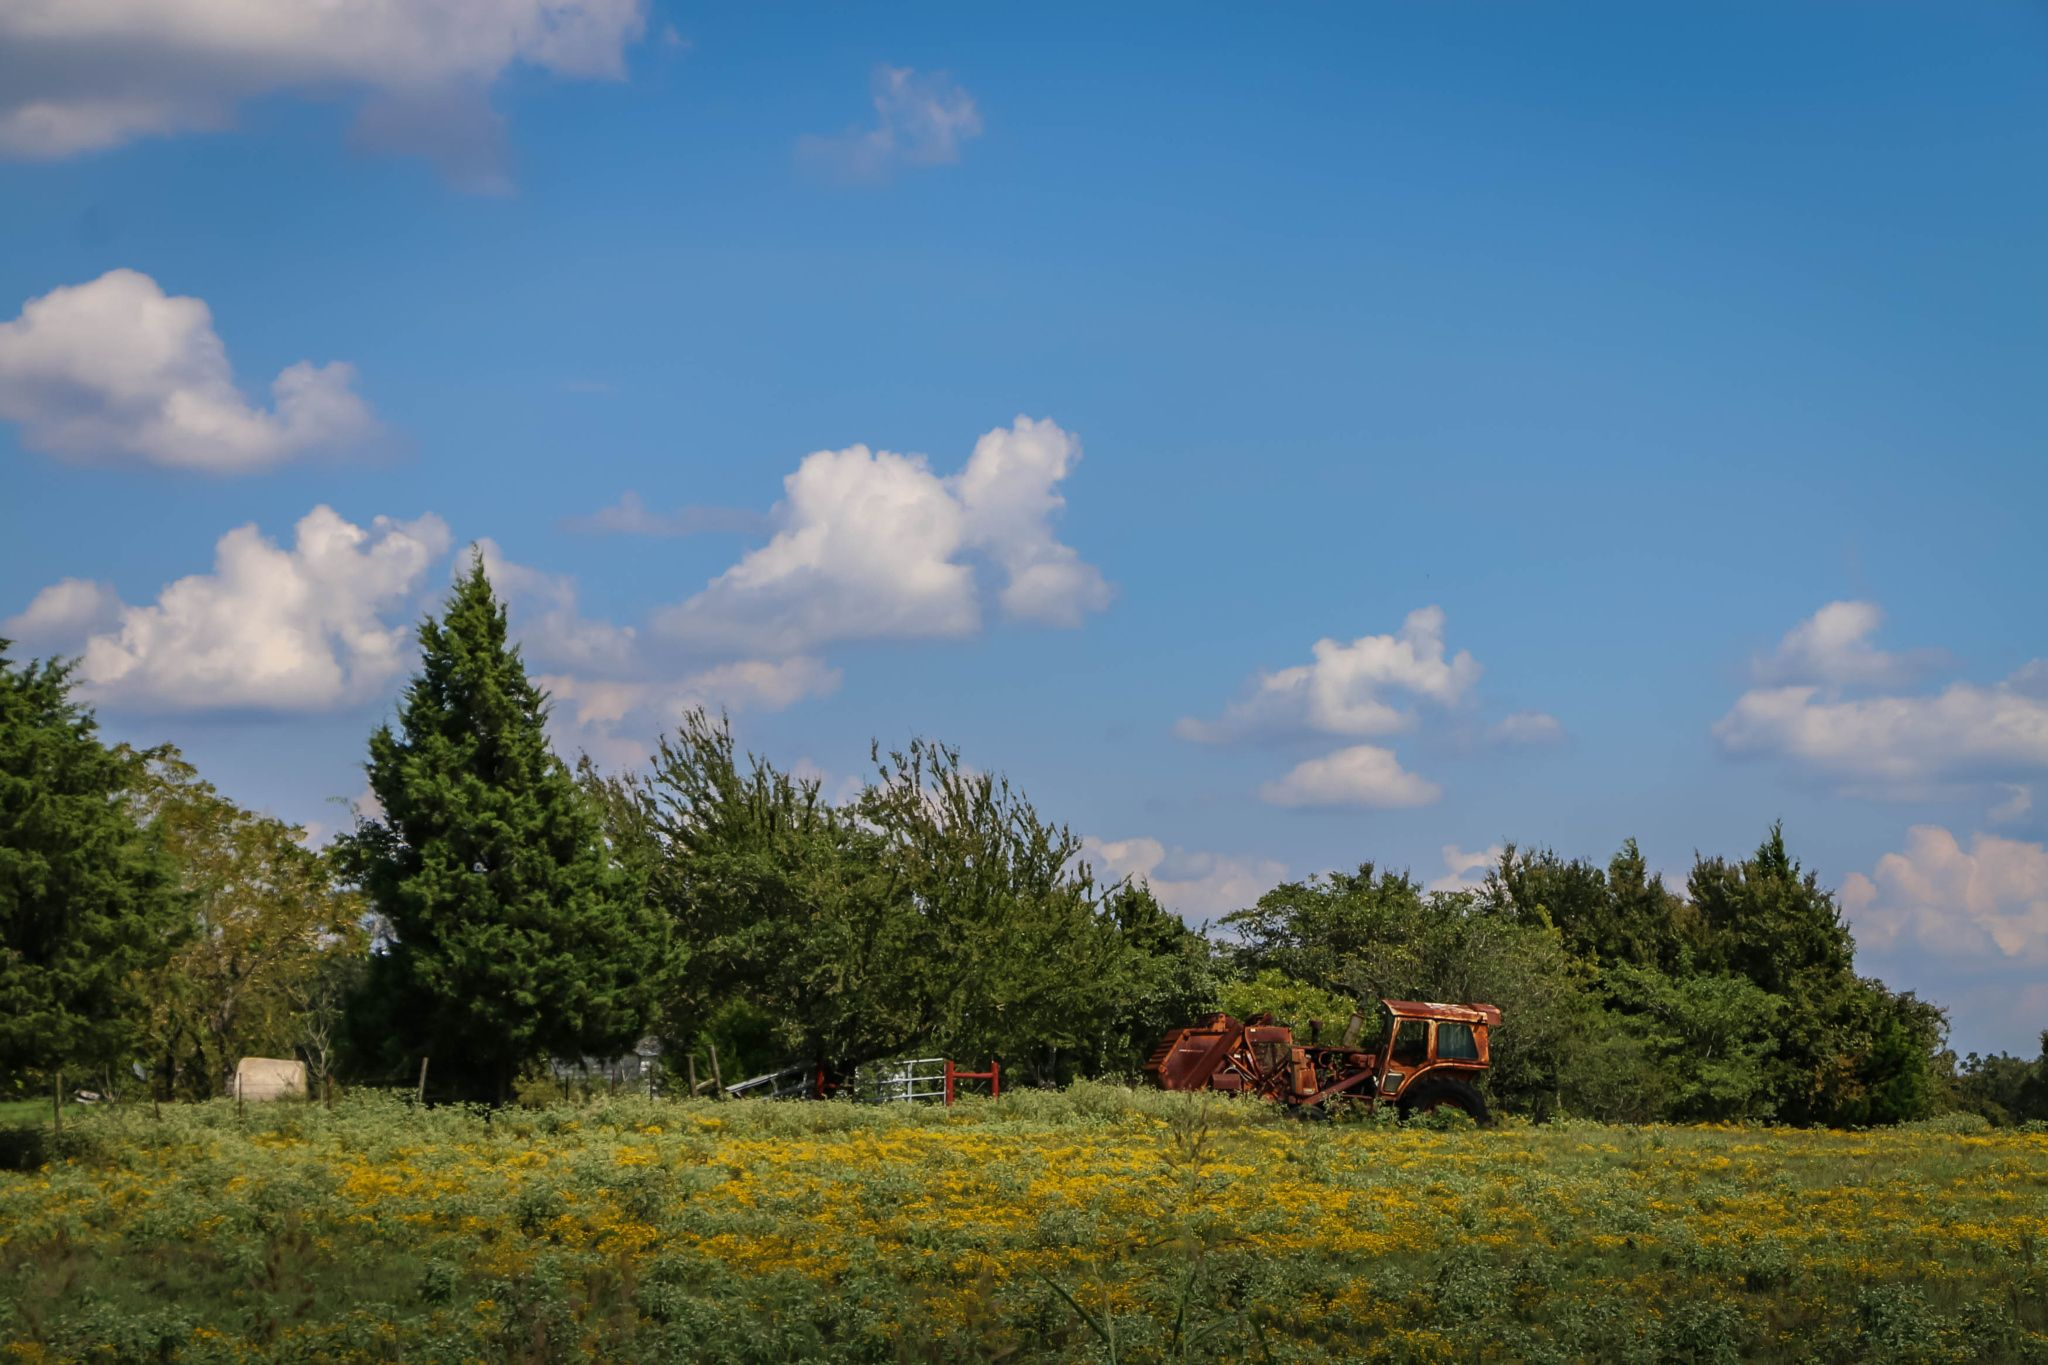 Rustic Tractor In Field Landscape View Of A Rustic Tractor In A